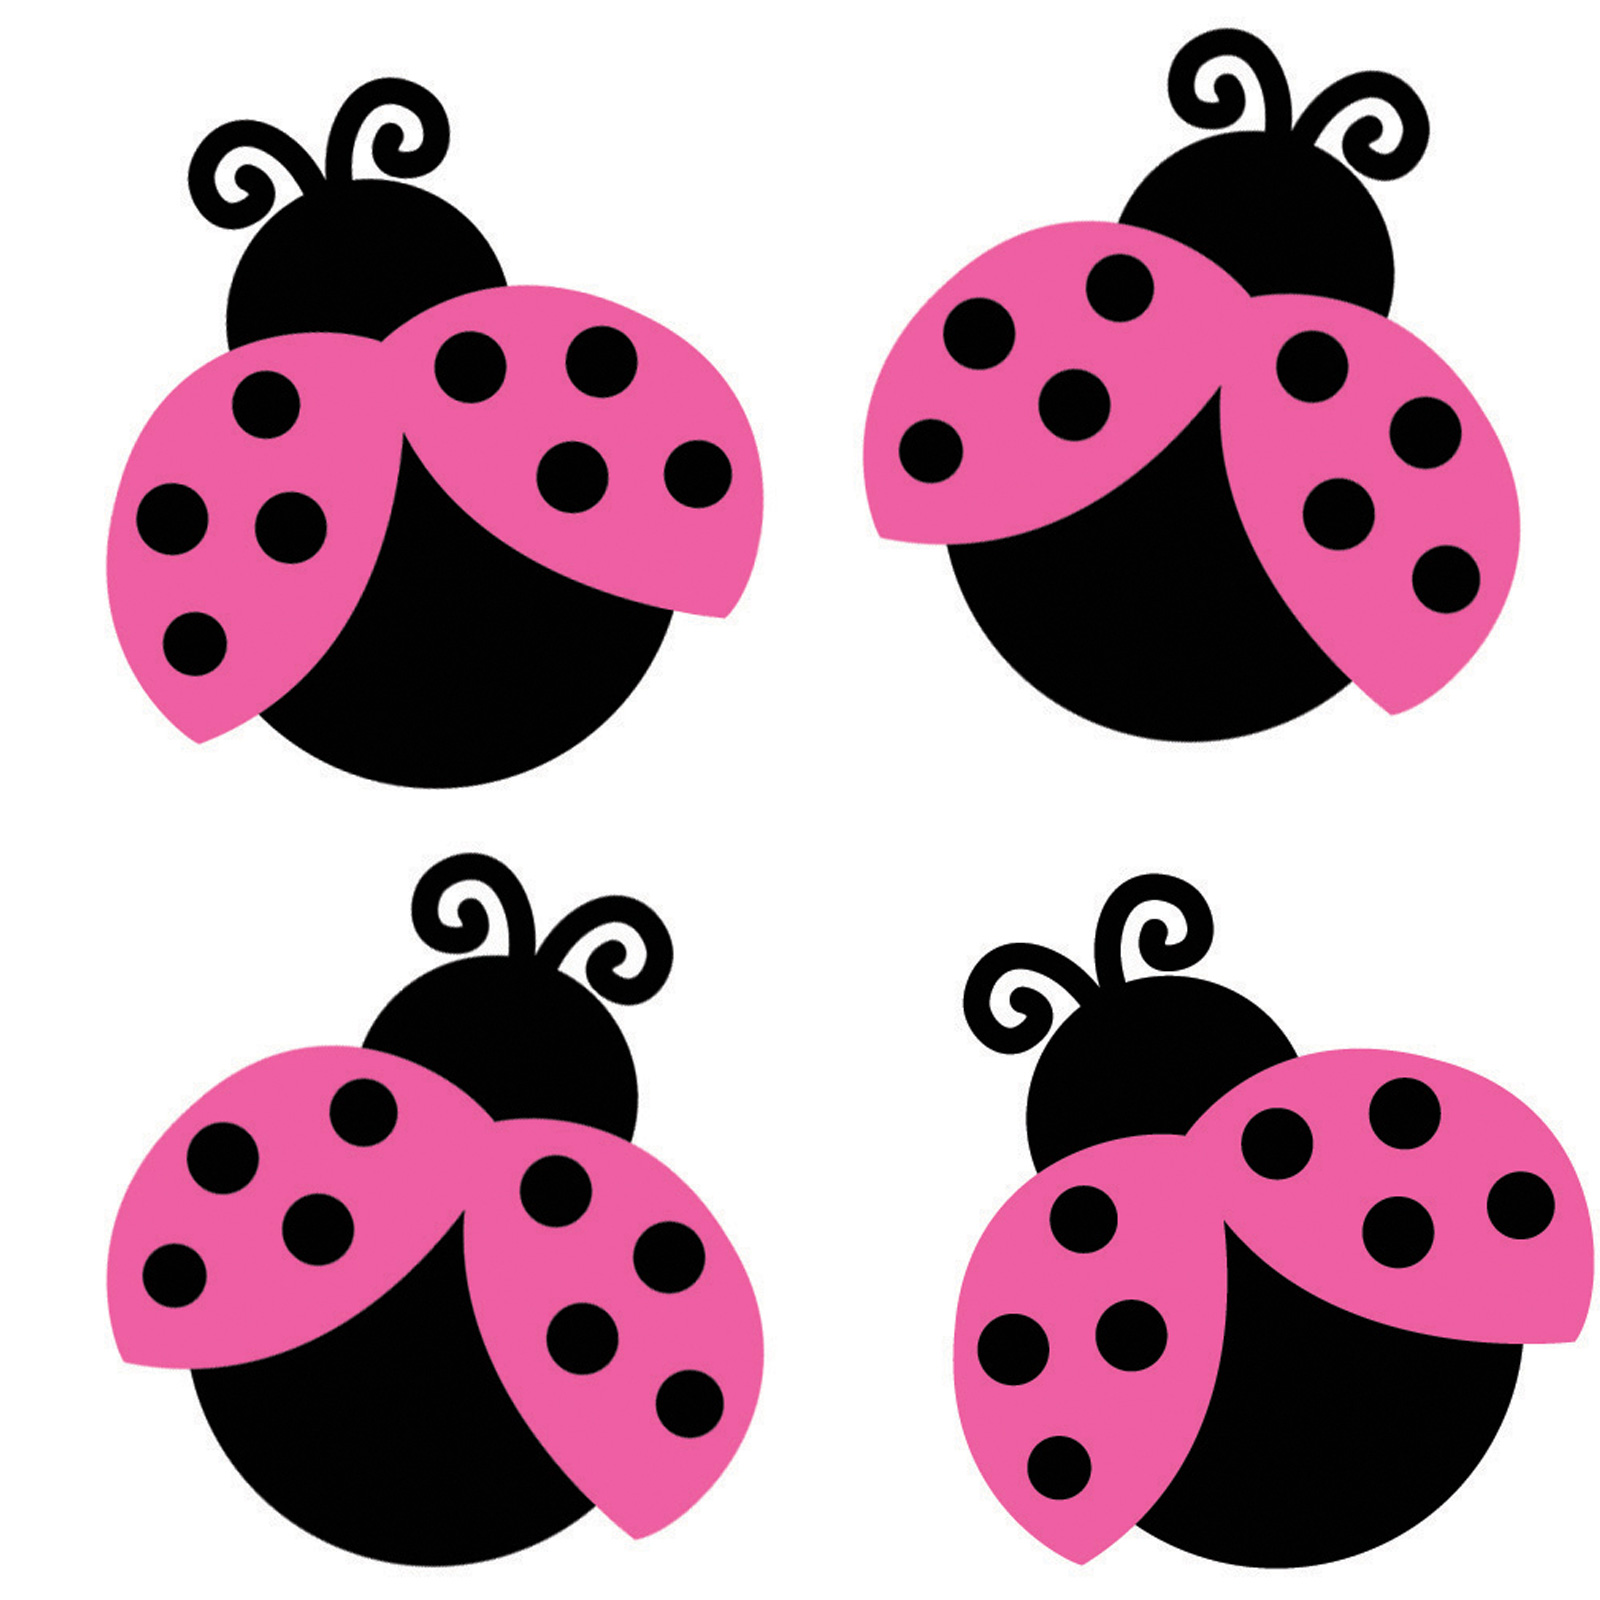 Http Funny Pictures Picphotos Net Pink Ladybug Clipart Wallpapersmap Com Wp Content Uploads 2013 05 Snail Clipart Png